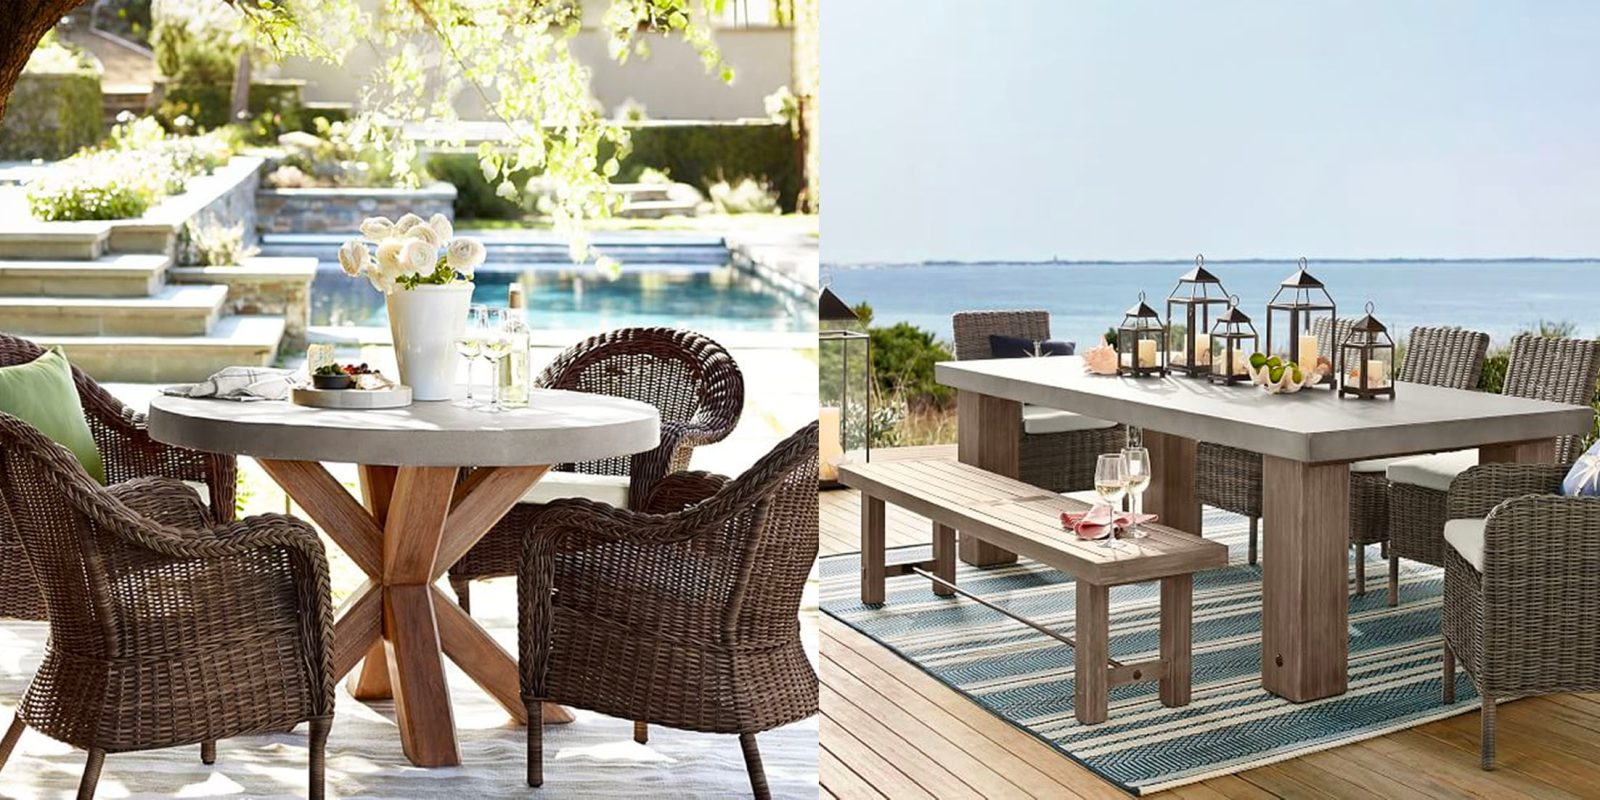 Pottery Barn S New Outdoor Collection Has Us Craving Warm Weather With Prices From 29